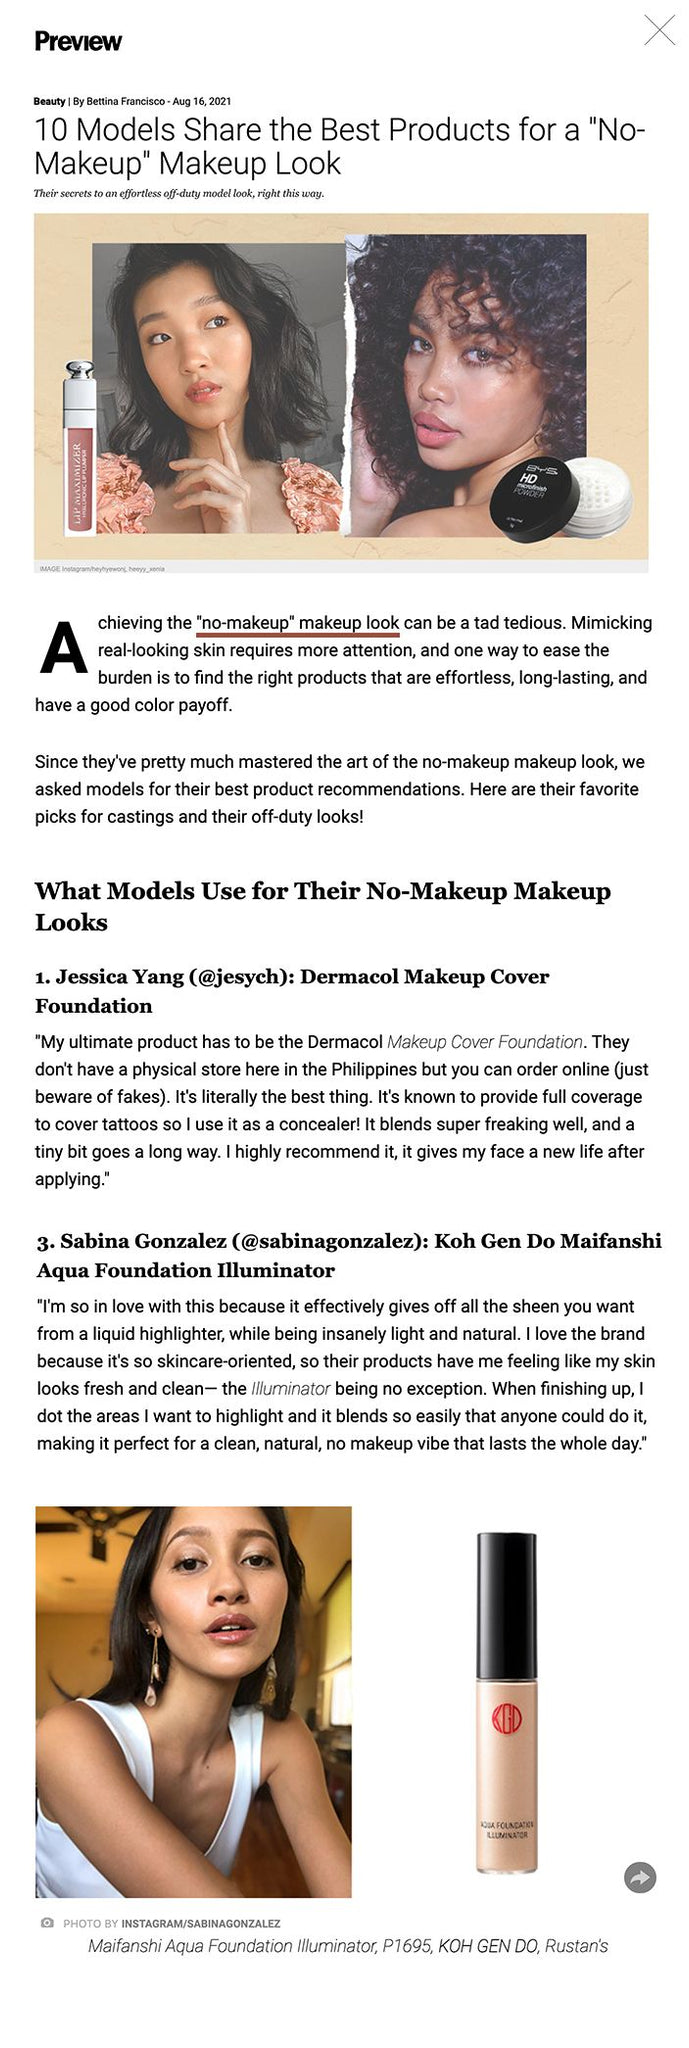 """10 Models Share the Best Products for a """"No-Makeup"""" Makeup Look Their secrets to an effortless off-duty model look, right this way.  10 Models Share the Best Products for a """"No-Makeup"""" Makeup Look IMAGE Instagram/heyhyewonj, heeyy_xenia Shares  Share  Tweet  Comments Achieving the """"no-makeup"""" makeup look can be a tad tedious. Mimicking real-looking skin requires more attention, and one way to ease the burden is to find the right products that are effortless, long-lasting, and have a good color payoff.  Since they've pretty much mastered the art of the no-makeup makeup look, we asked models for their best product recommendations. Here are their favorite picks for castings and their off-duty looks!  What Models Use for Their No-Makeup Makeup Looks 1. Jessica Yang (@jesych): Dermacol Makeup Cover Foundation """"My ultimate product has to be the Dermacol Makeup Cover Foundation. They don't have a physical store here in the Philippines but you can order online (just beware of fakes). It's literally the best thing. It's known to provide full coverage to cover tattoos so I use it as a concealer! It blends super freaking well, and a tiny bit goes a long way. I highly recommend it, it gives my face a new life after applying.""""  ADVERTISEMENT - CONTINUE READING BELOW   ADVERTISING   model makeup essentials   PHOTO BY INSTAGRAM/JESYCH Makeup Cover Foundation, P690, DERMACOL, Lazada  2. Reins Mika (@reinsmika): Sunnies Face Face Glass in Nova """"My go-to favorite product for is the Sunnies Face Face Glass in Nova. It's light on the skin and quickly gives you a dewy, glass-like finish. It's a model makeup must-have for me since it gives the illusion of higher cheekbones and a more natural look while accentuating your angles.""""  CONTINUE READING BELOW  RECOMMENDED VIDEOS  model makeup essentials   PHOTO BY INSTAGRAM/REINSMIKA Face Glass in Nova, P445, SUNNIES FACE, Lazada  3. Sabina Gonzalez (@sabinagonzalez): Koh Gen Do Maifanshi Aqua Foundation Illuminator """"I'm so in love with this be"""